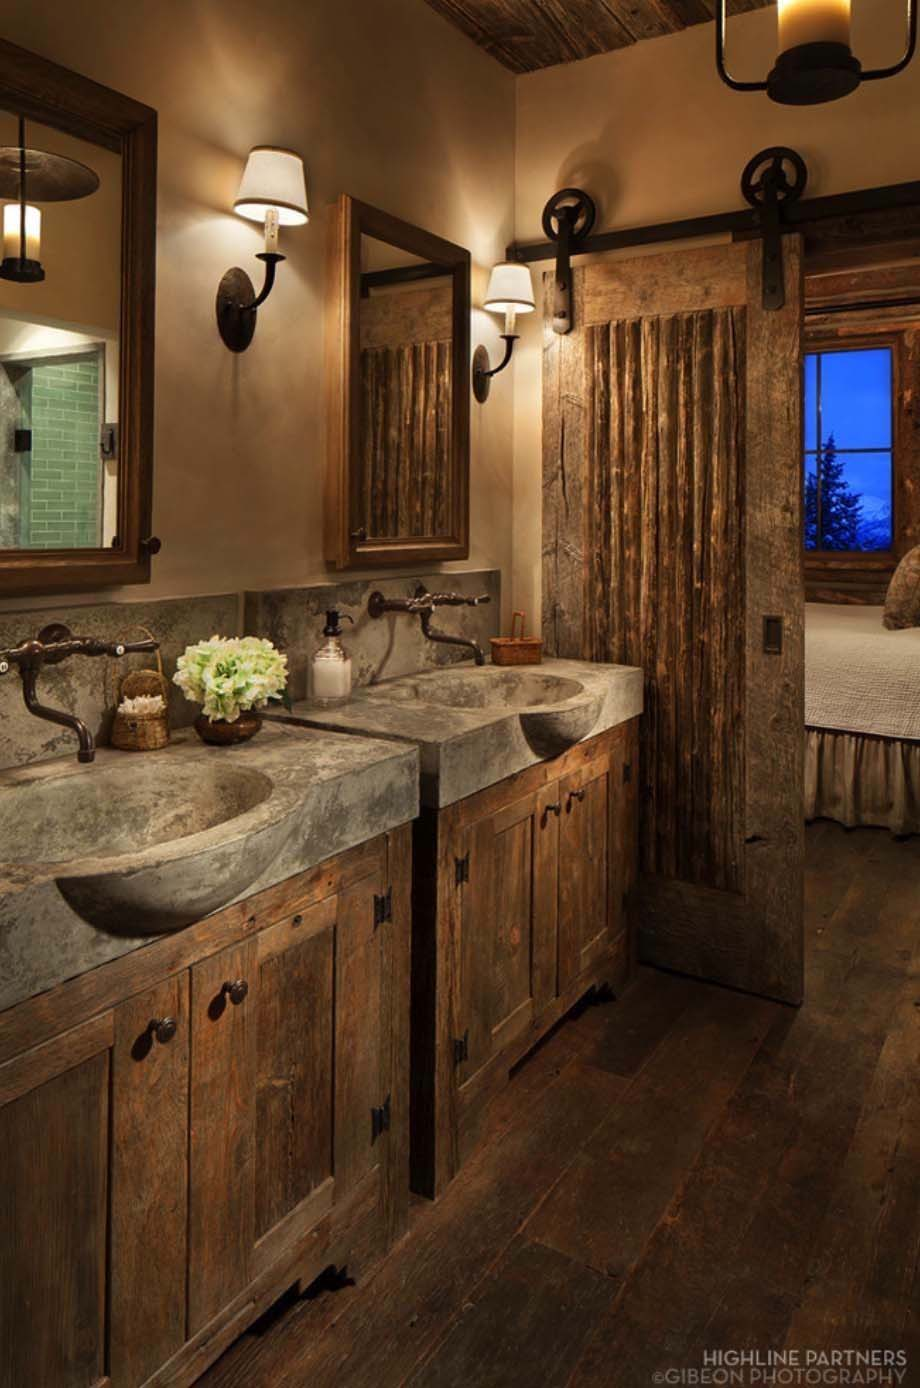 17 inspiring rustic bathroom decor ideas for cozy home for Bathroom decor ideas